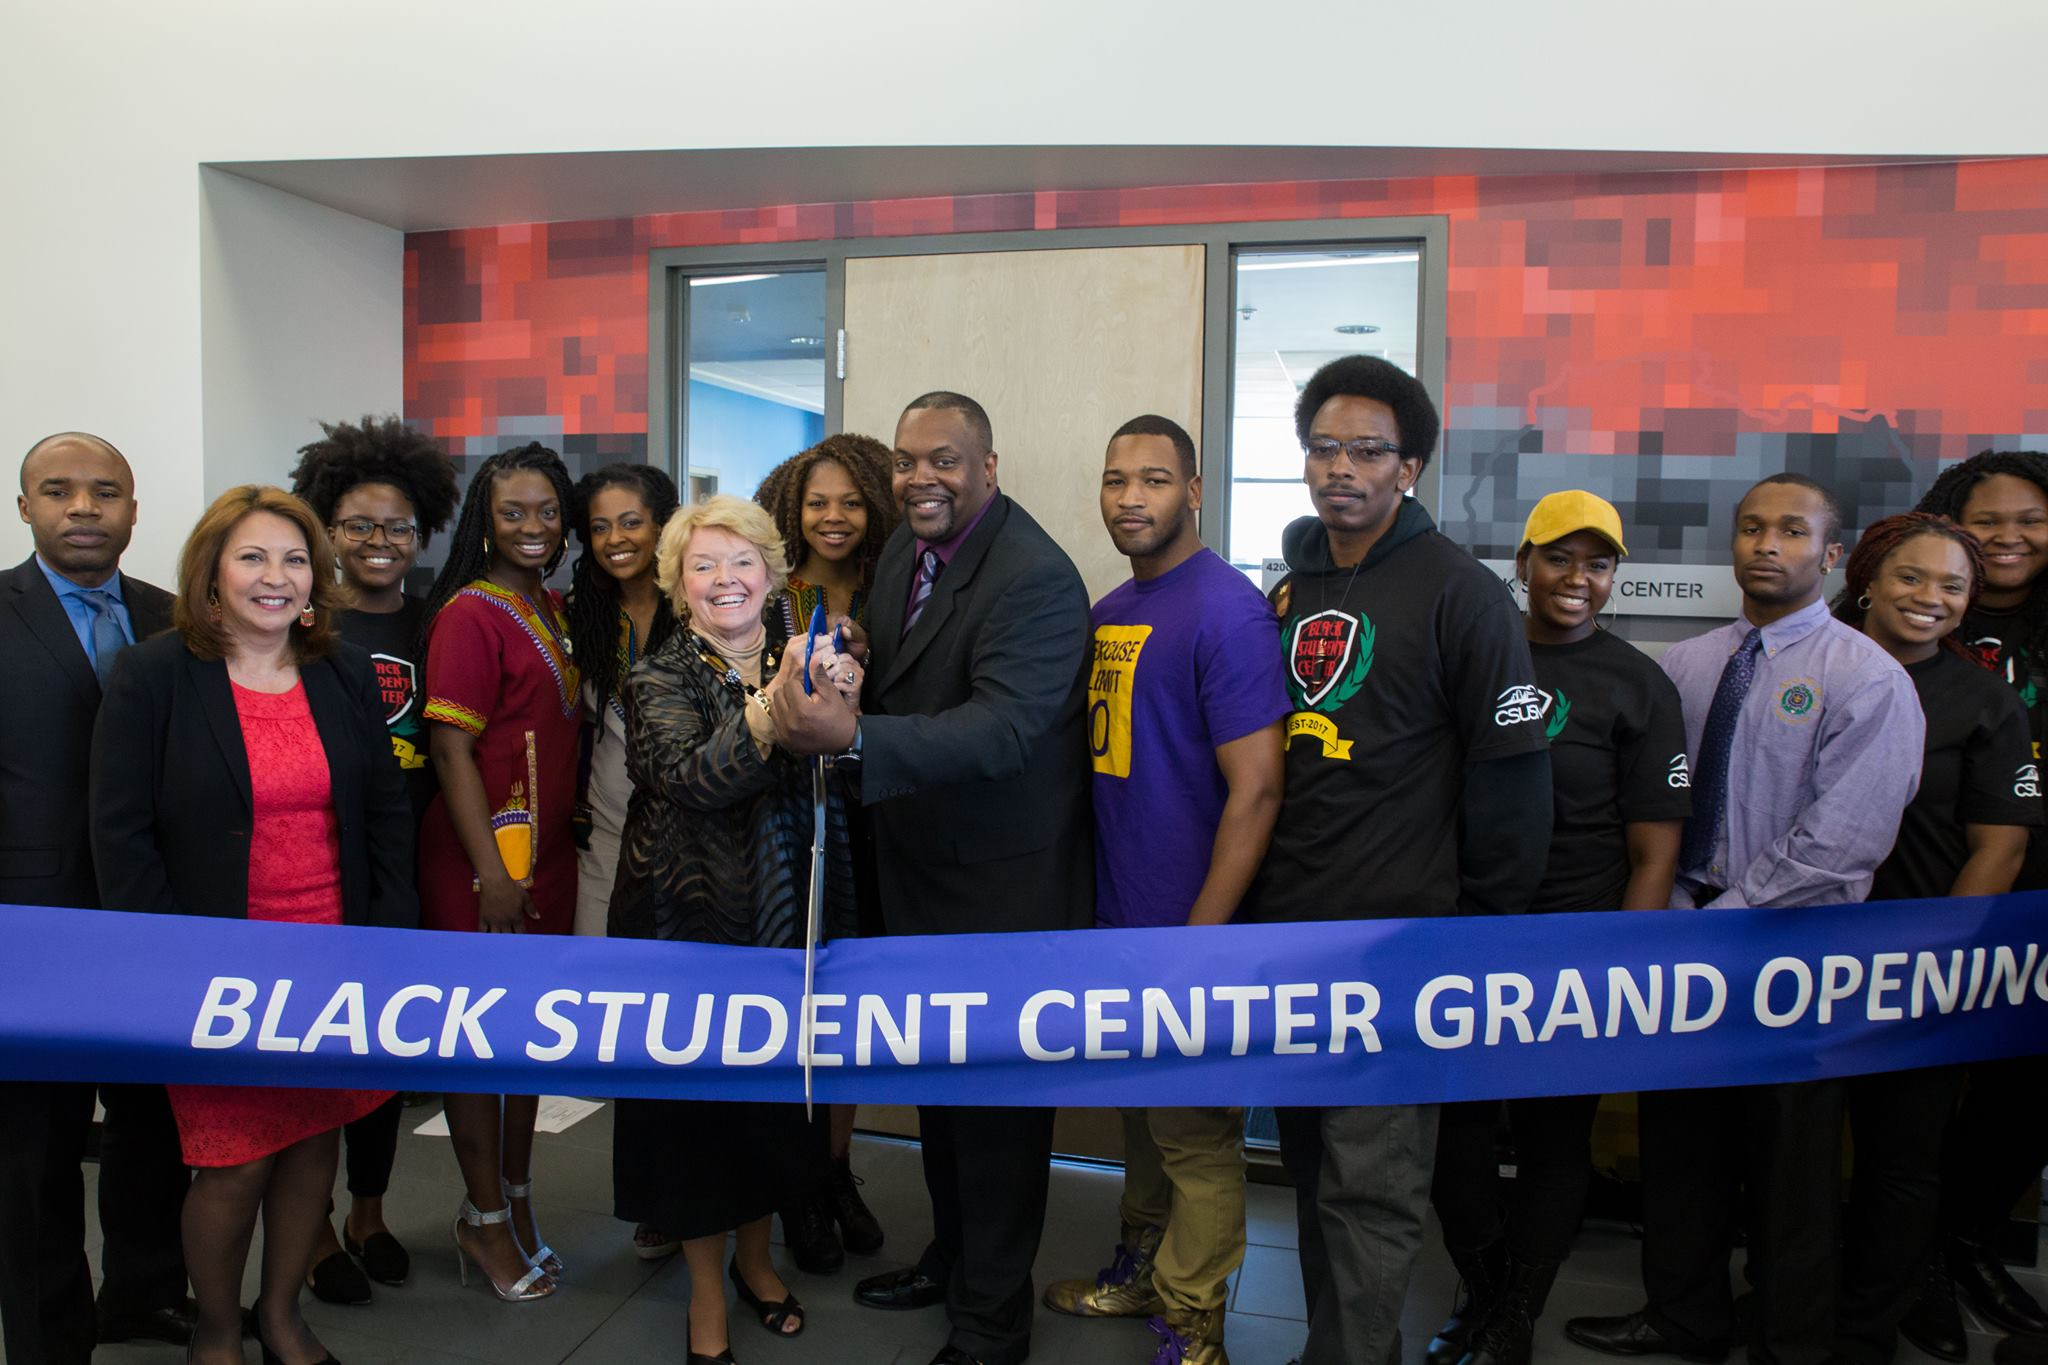 The Black Student Center Grand Opening